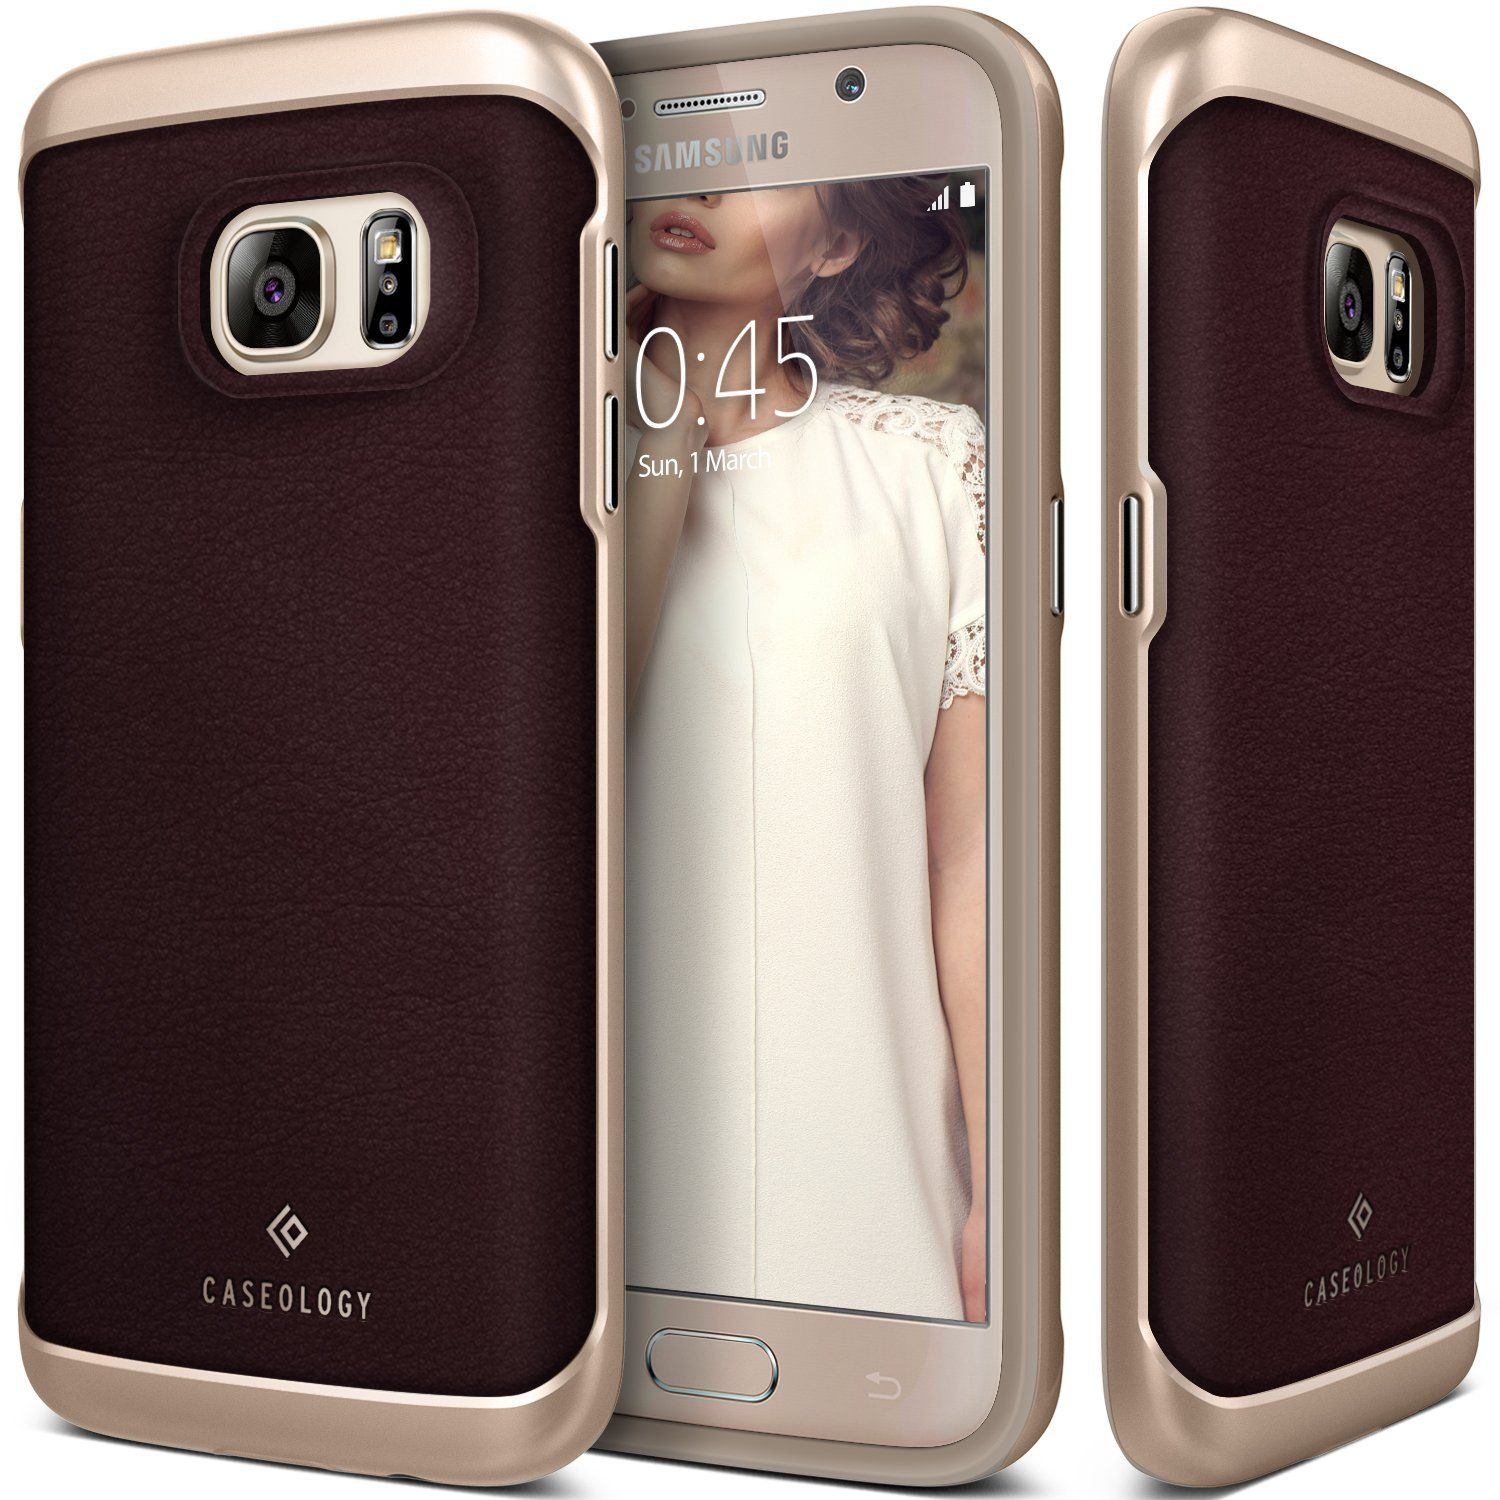 Featured Top 10 Best Cases For Samsung Galaxy S7 Samsung S7 Edge Cases Samsung Galaxy S7 Edge Cases Samsung Galaxy S7 Cases